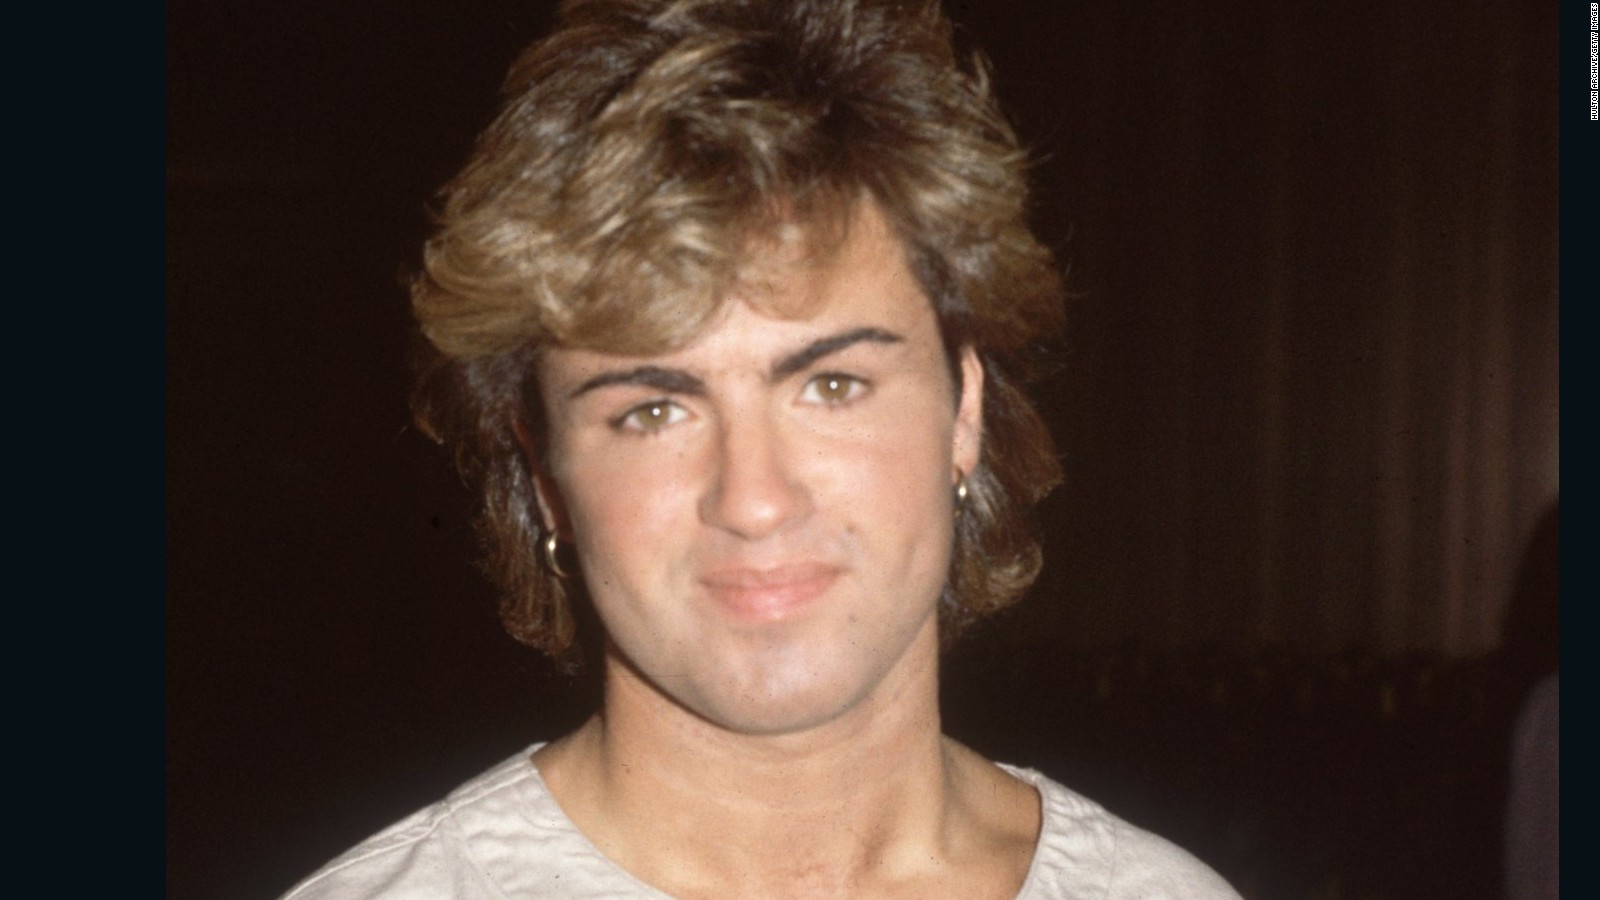 George michael pop superstar has died at 53 new york times - George Michael Pop Superstar Has Died At 53 New York Times 69